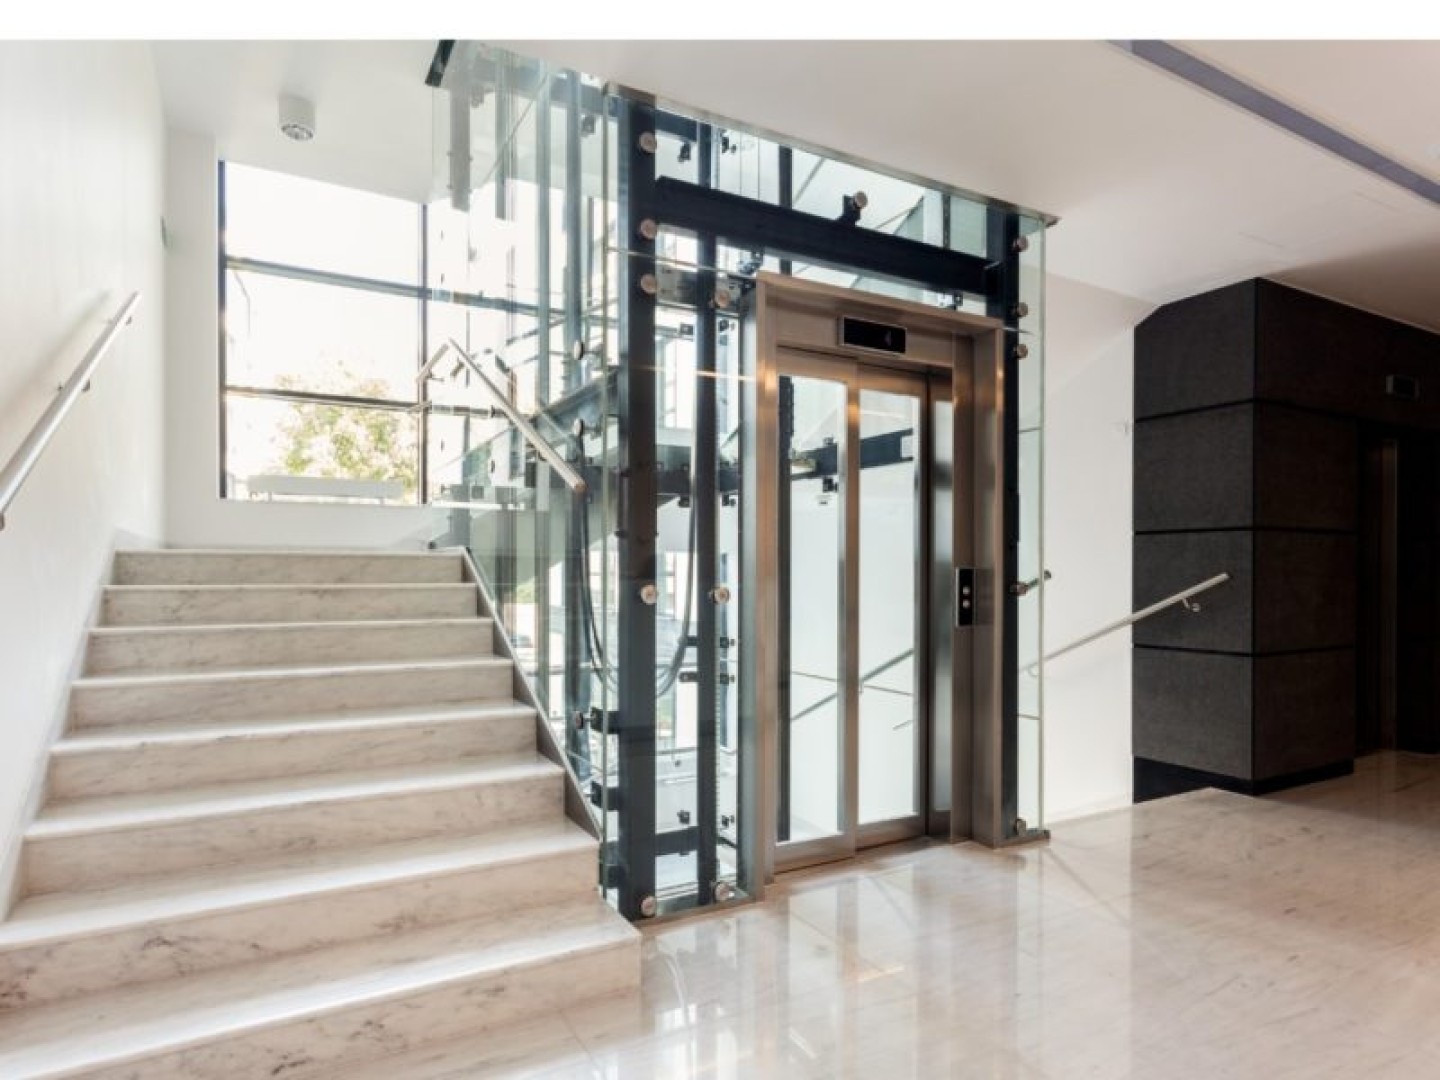 Lift consultants design glass lift doors